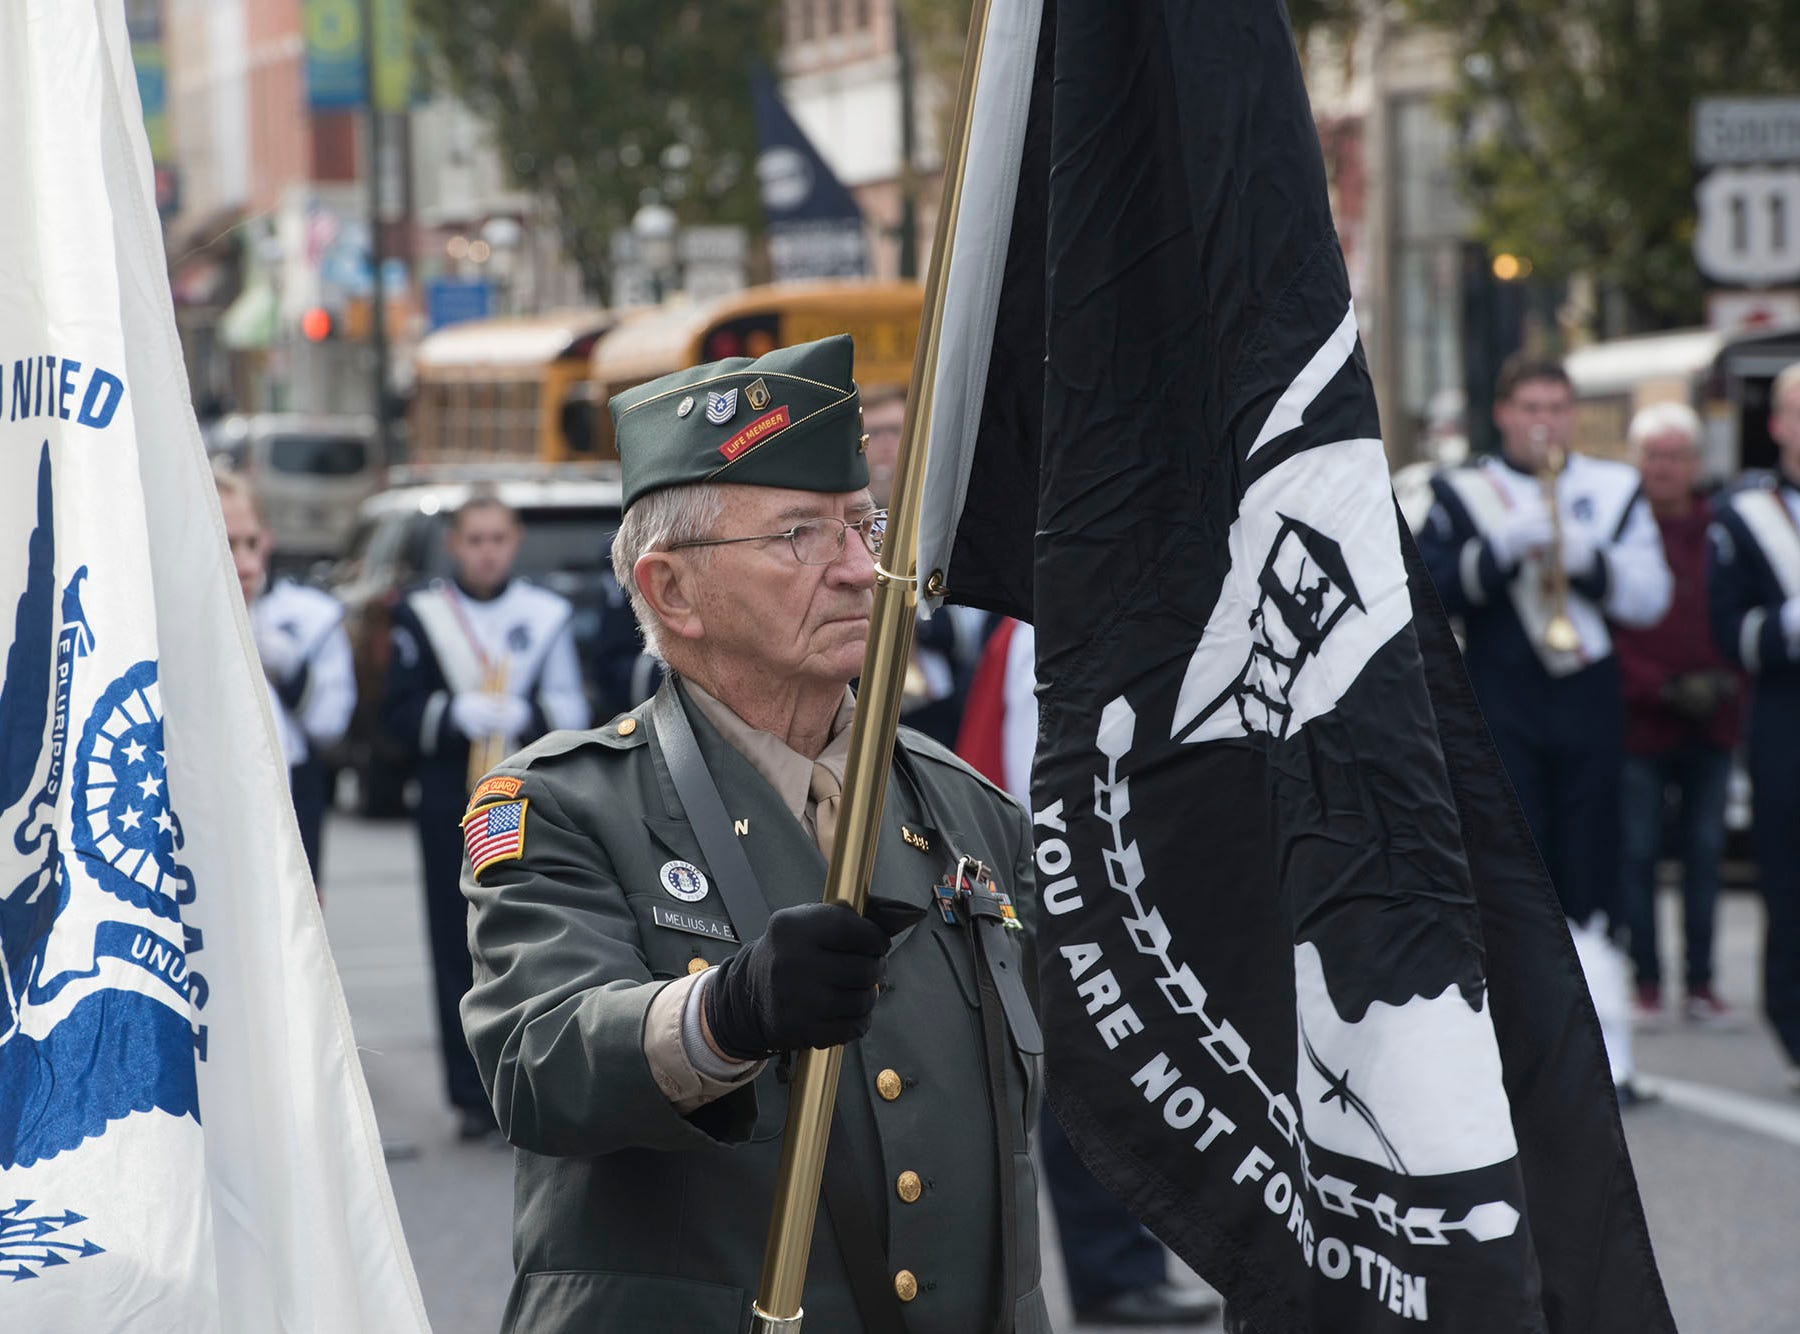 The Veterans Day Parade and ceremony to honor members of the military was held Monday, November 12, 2018 along Lincoln Way East and at Memorial Square.